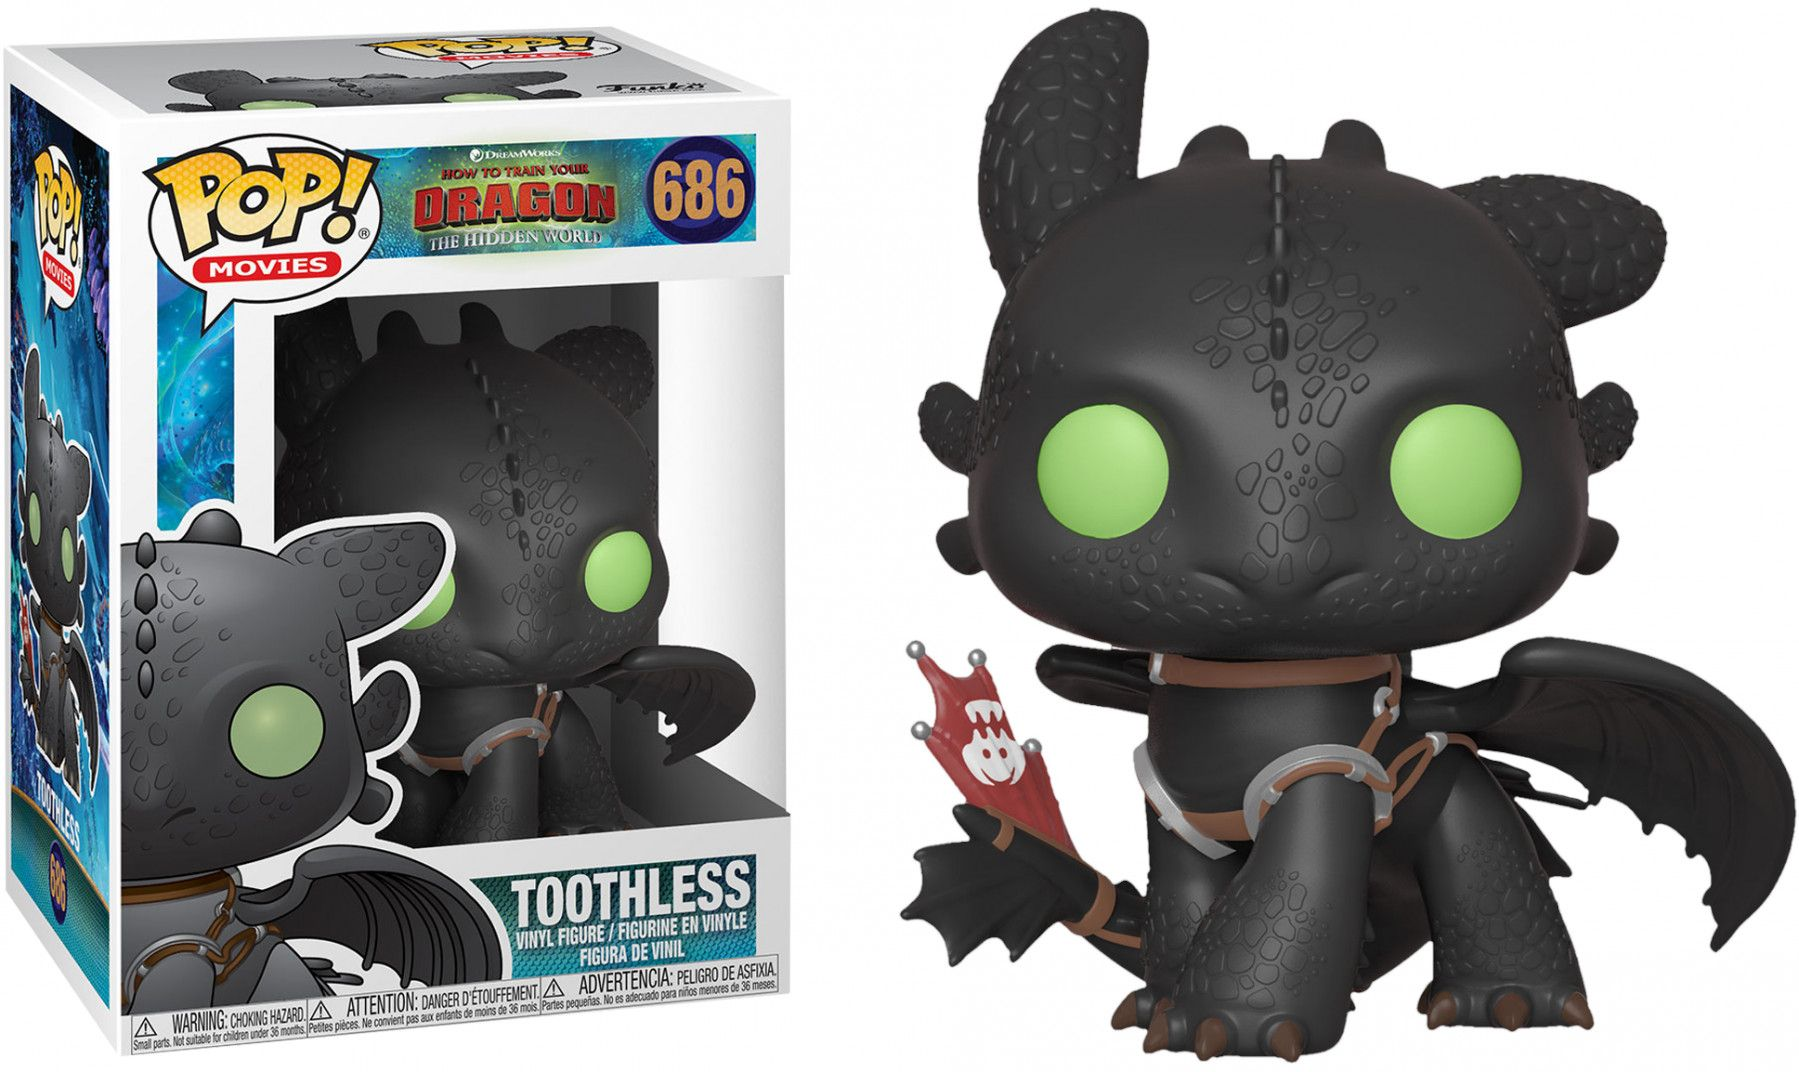 Фигура Funko Pop! How to Train Your Dragon 3 - Toothless, #686 - 2